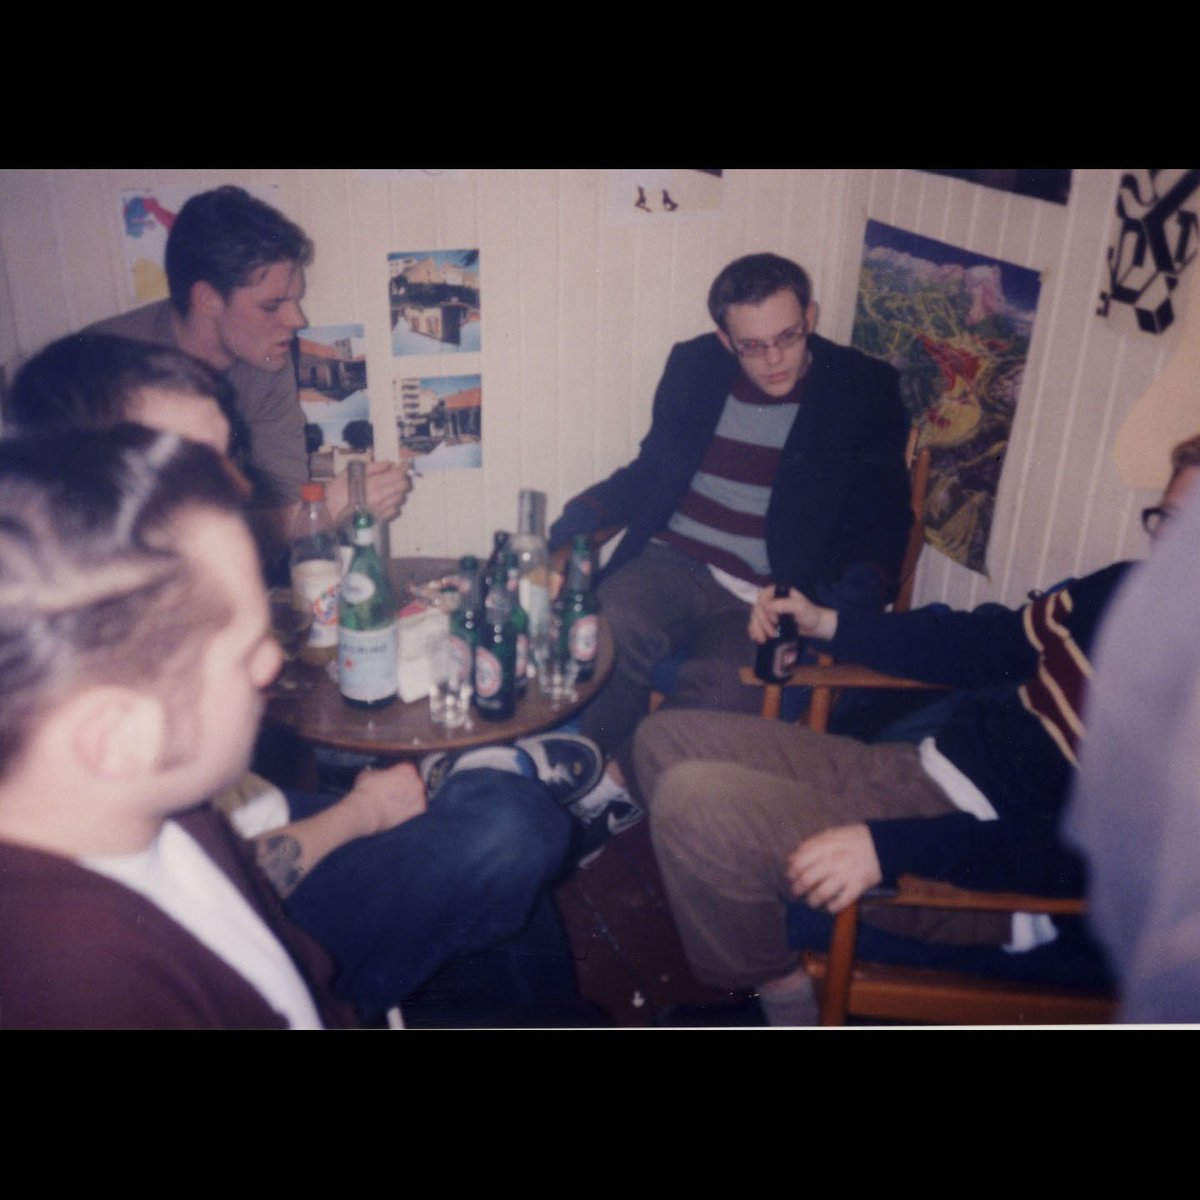 Feb 7, 1998: The Get Up Kids, backstage in Berlin, Germany. #onthisdayin https://t.co/k7BaXcXOdQ